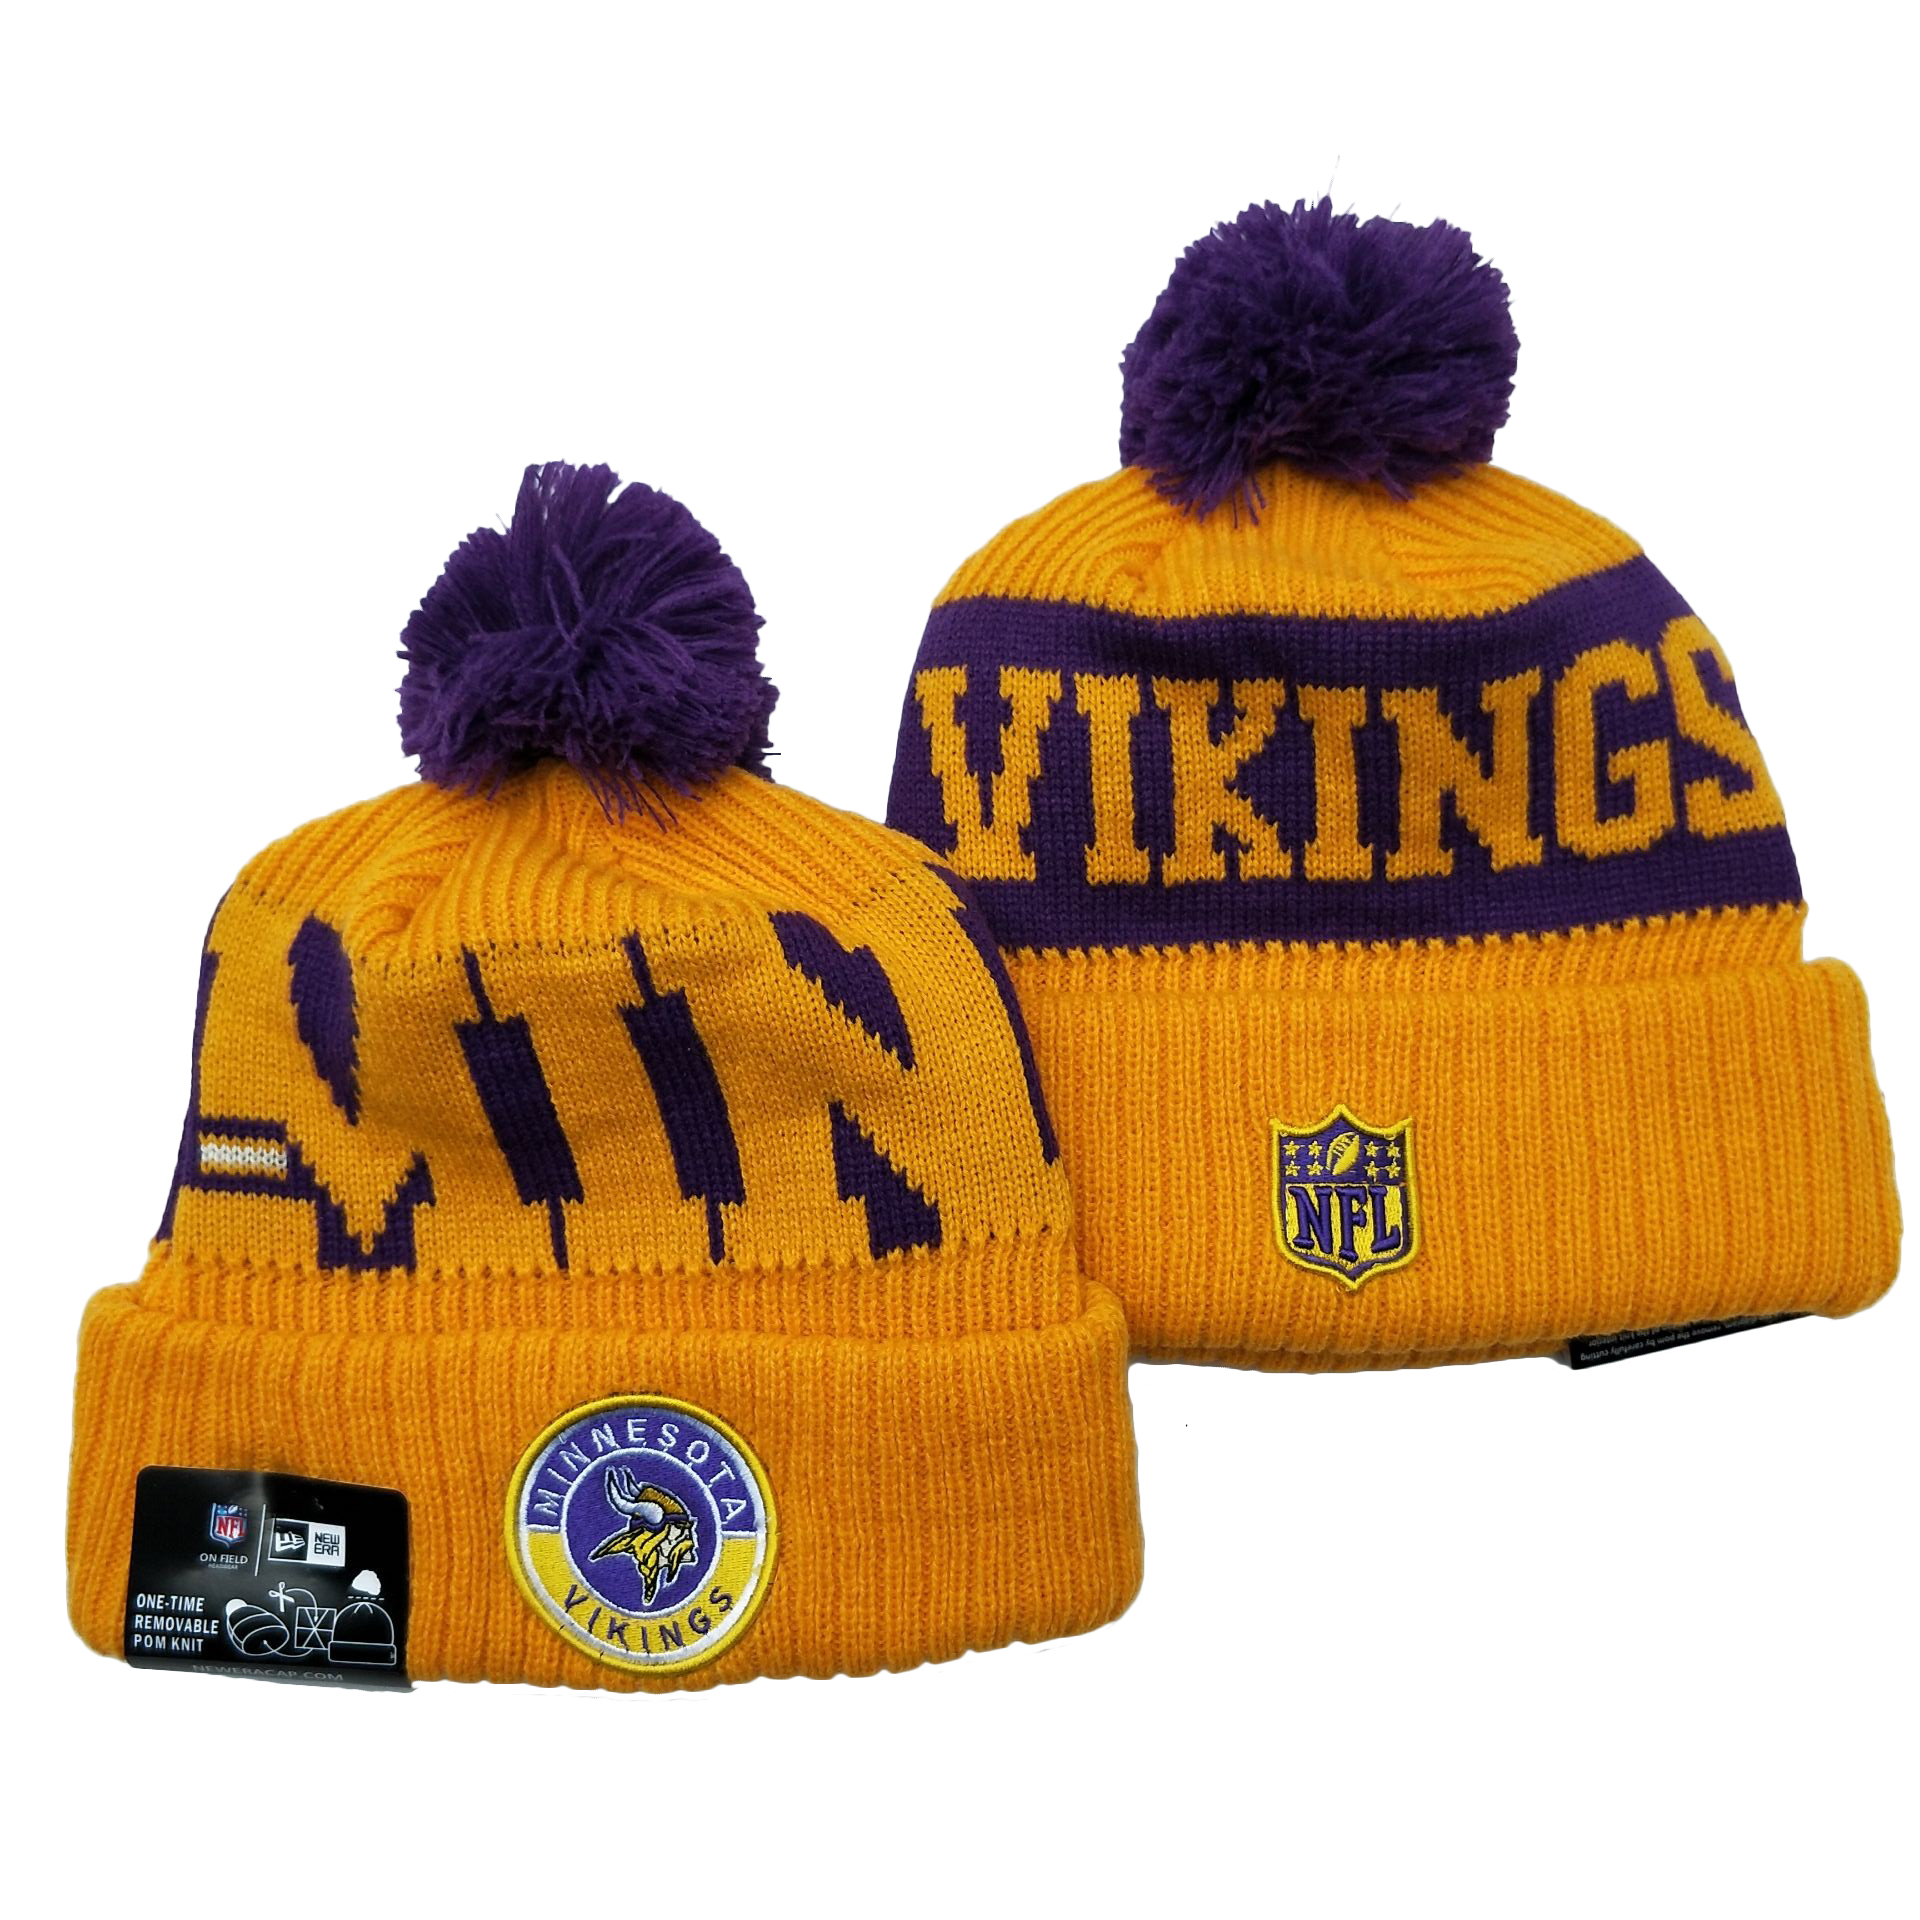 Minnesota Vikings Knit Hats 047